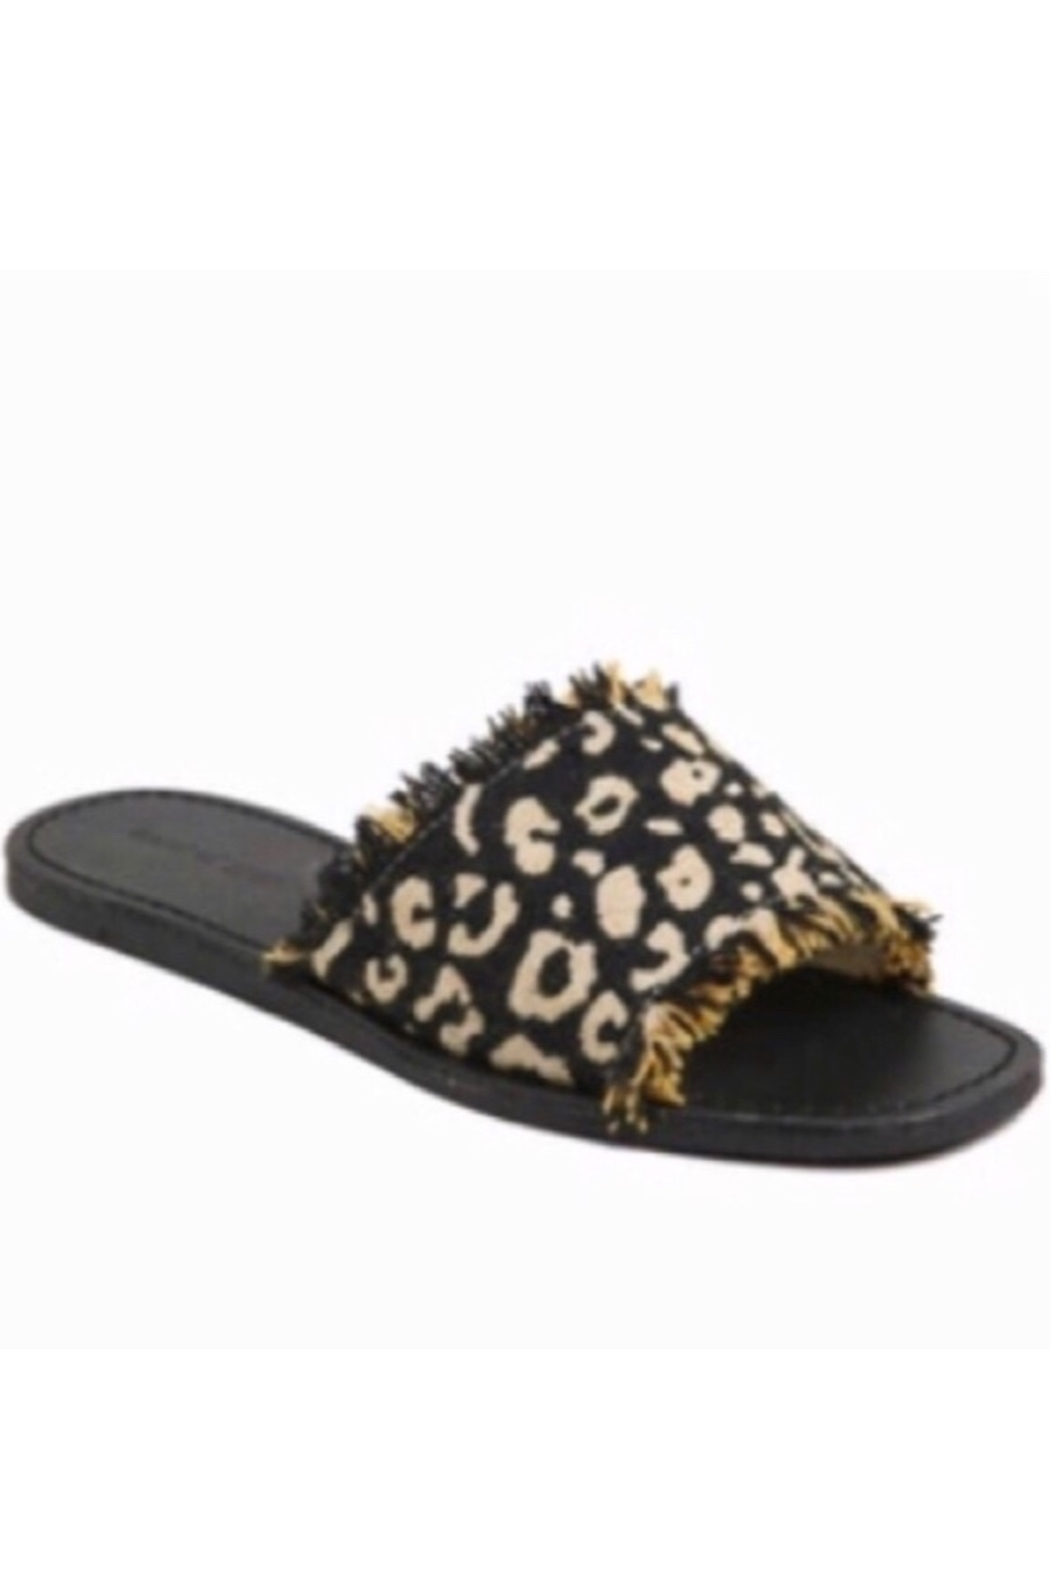 Band Of Gypsies Marina Leopard Woven Canvas Slide Sandal - Black - Main Image